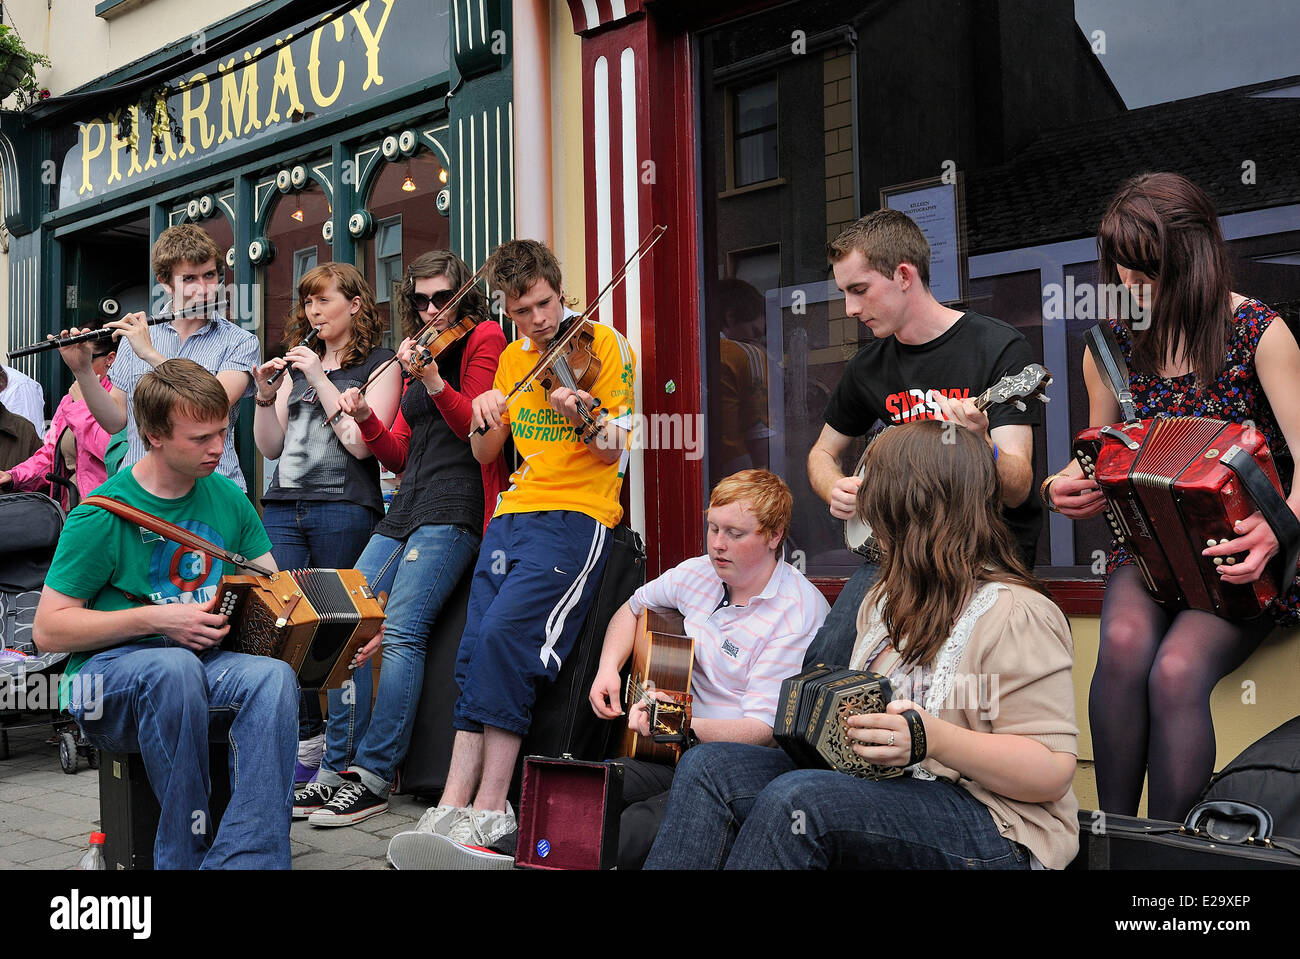 Ireland, County Clare, Milltown Malbay, Music Summer classes, Improvised band playing traditional irish music - Stock Image